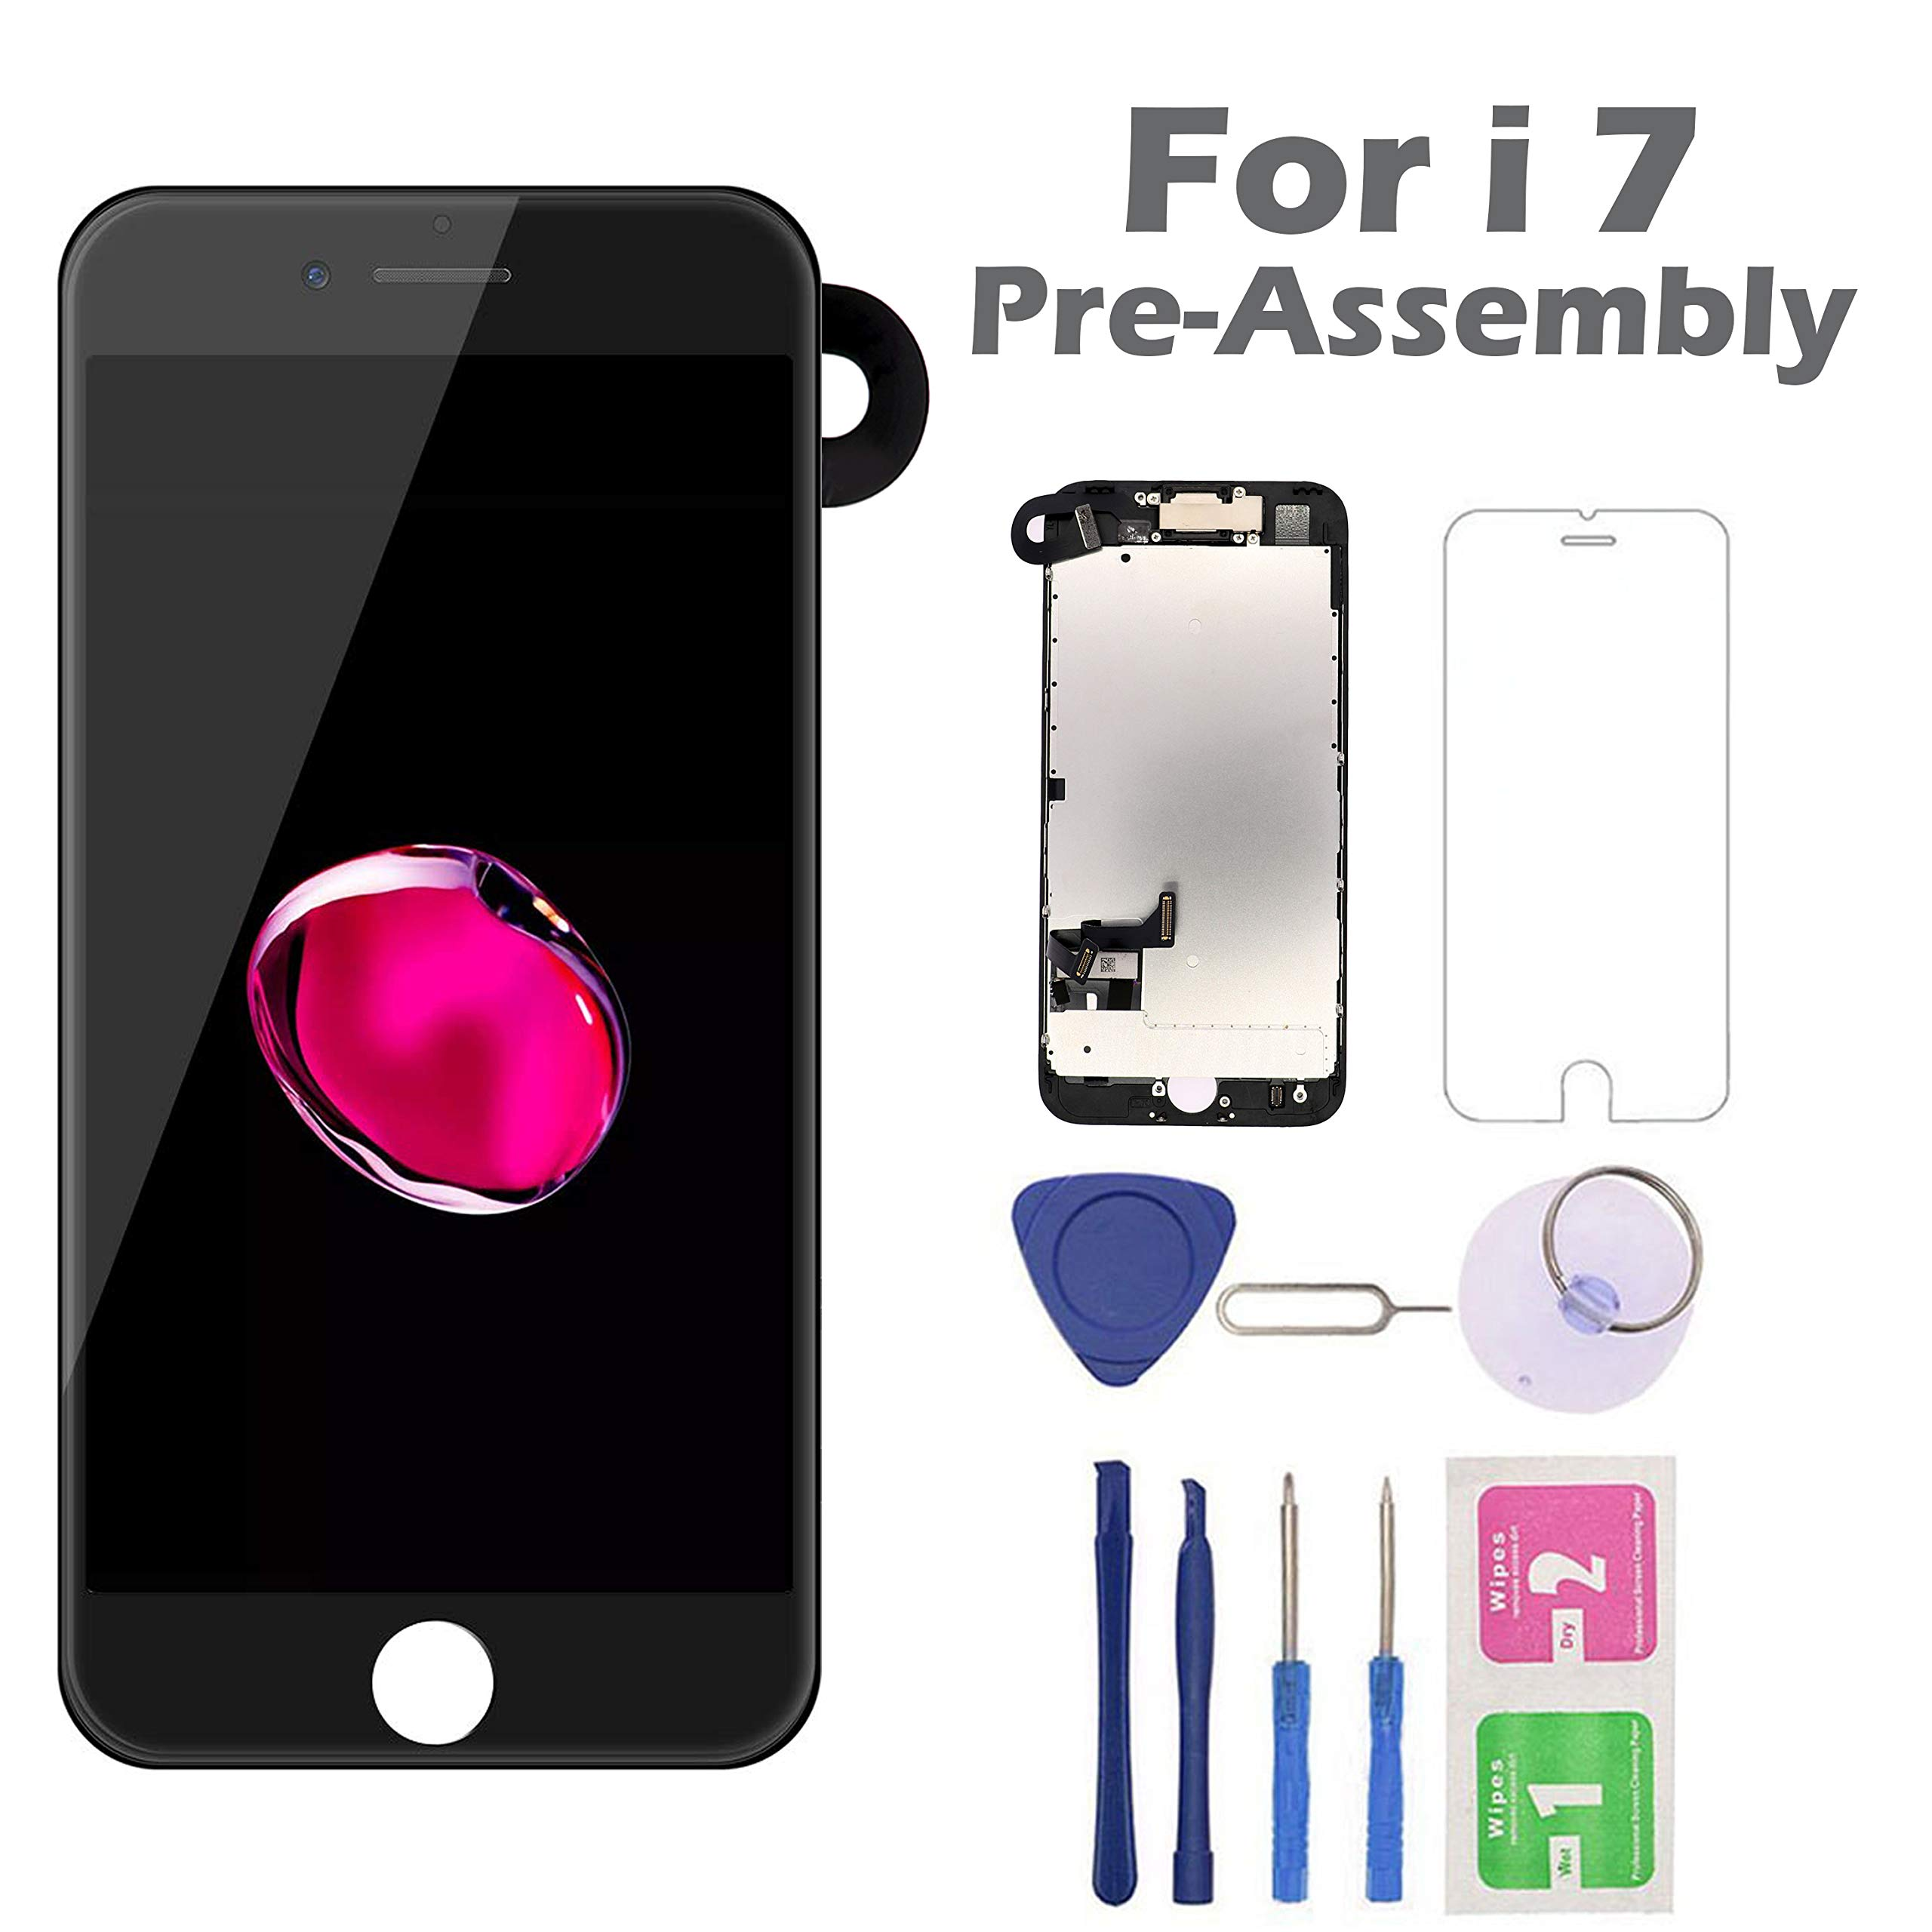 for iPhone 7 Screen Replacement, Arotech Pre-Assembled 4.7 Inch LCD 3D Touch Display Digitizer Assembly Kit with Repair Tool, Compatible with A1660, A1778, A1779 All Version (Black) by Arotech